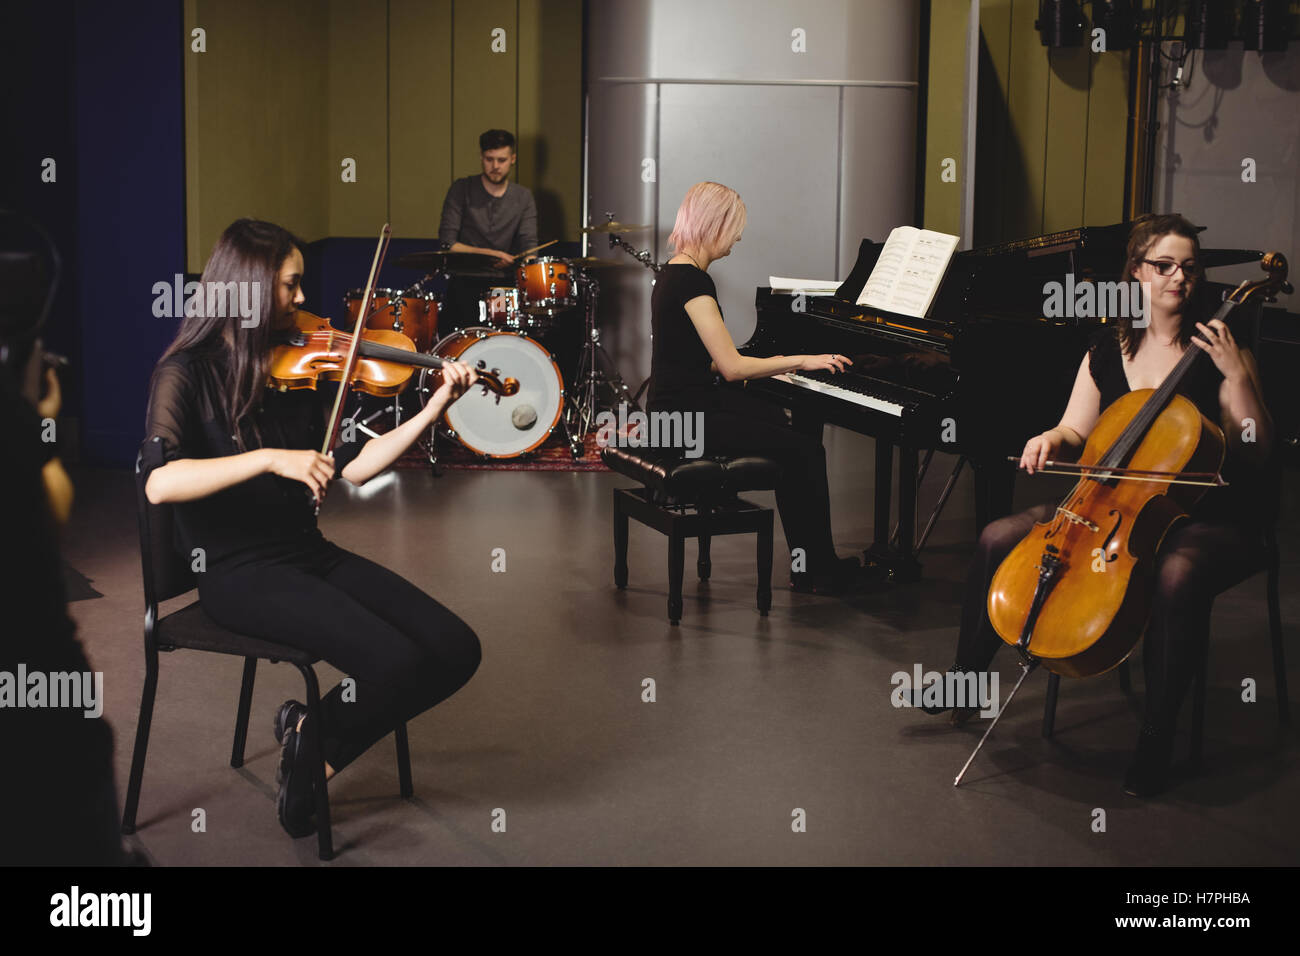 Group of students playing various instruments - Stock Image